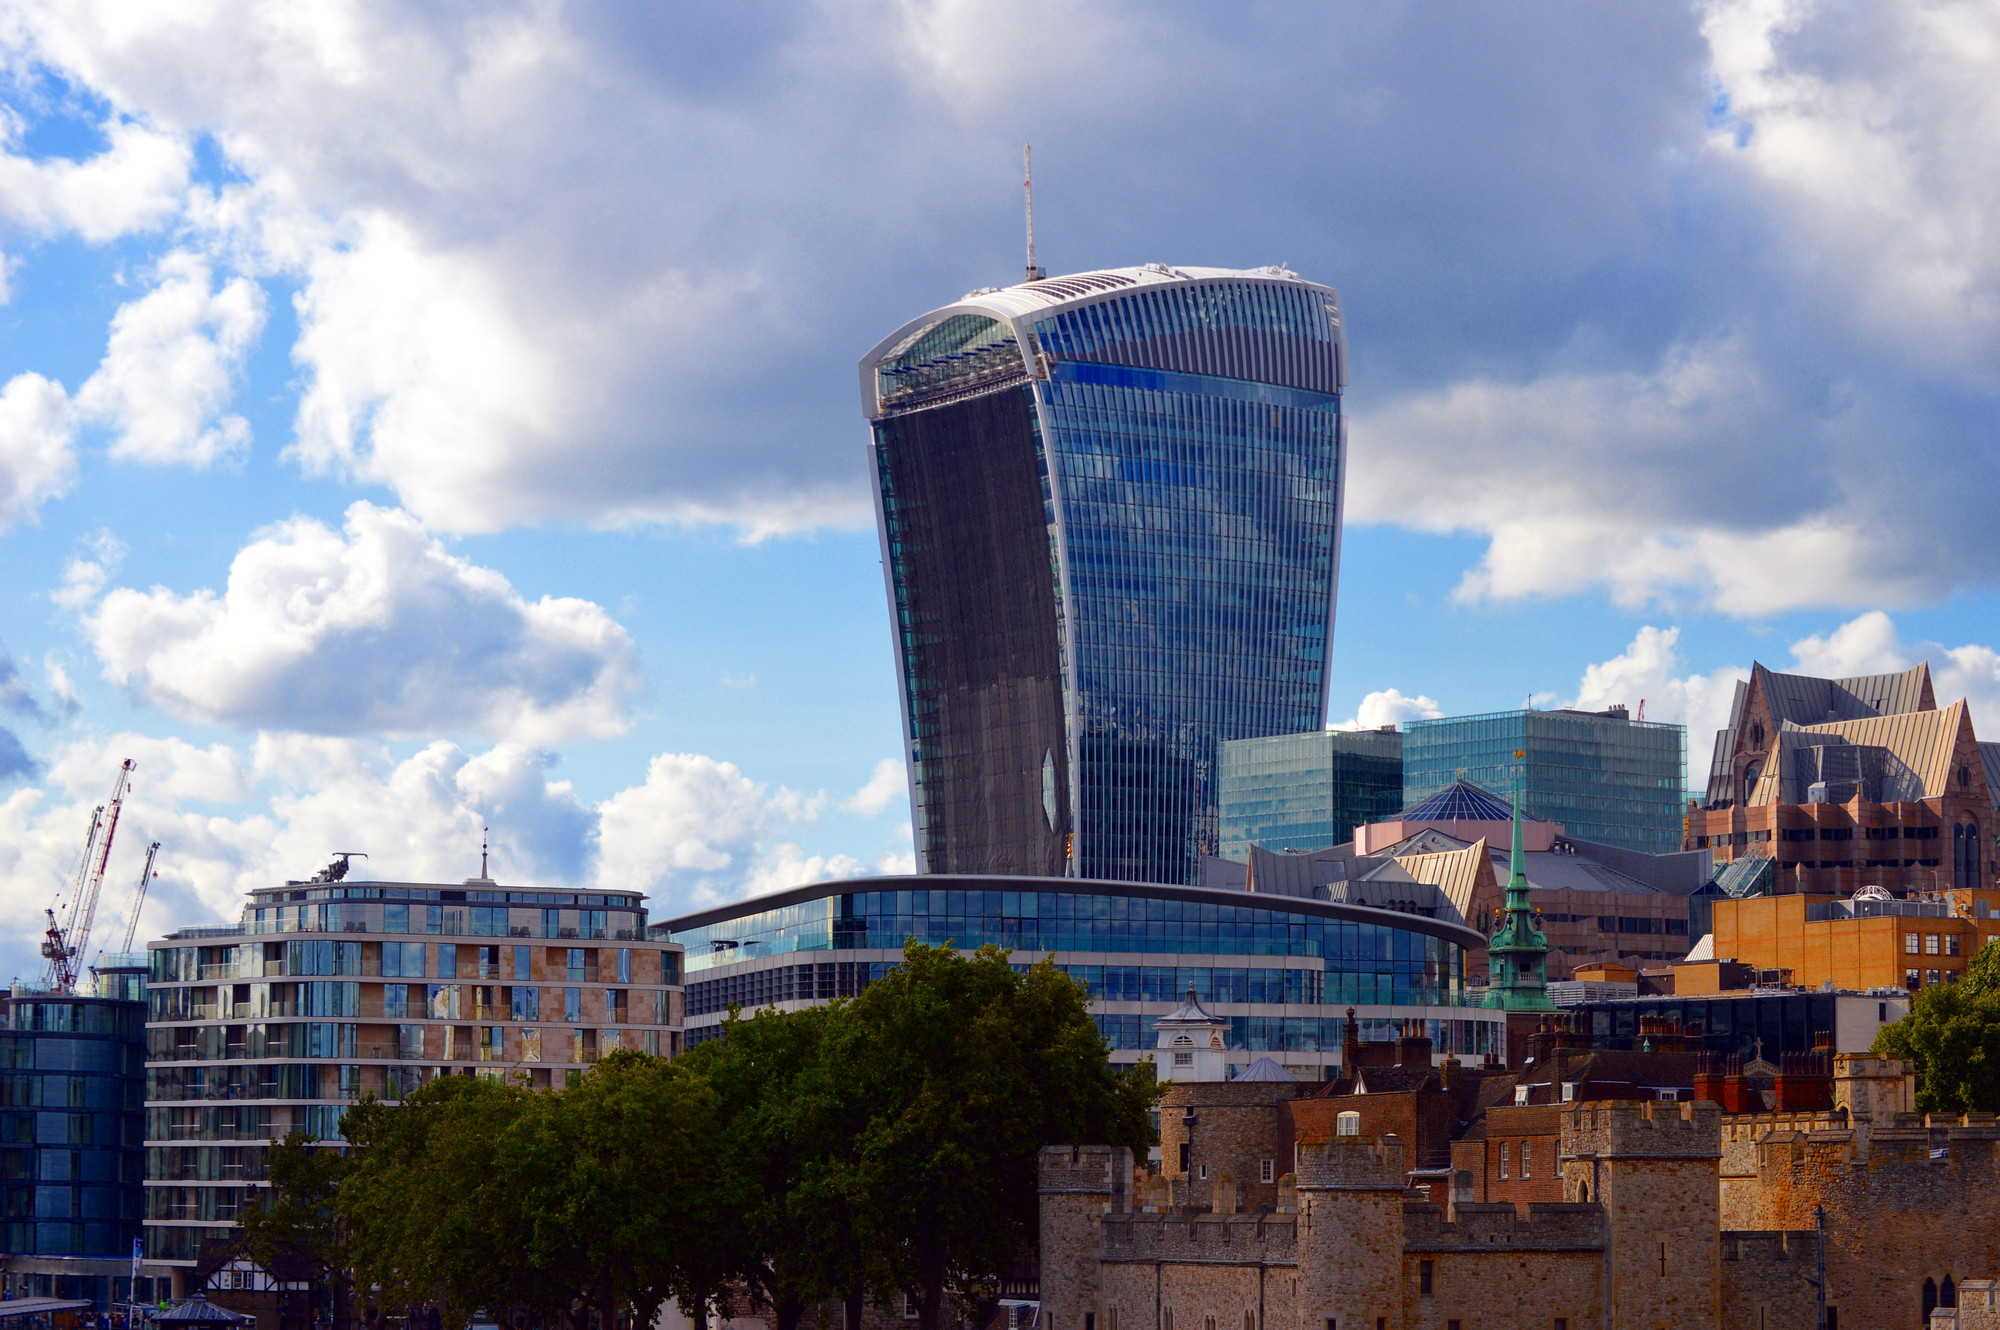 """The Walkie Talkie,"" 20 Fenchurch Street, London. Image © Flickr CC user Bill Smith"